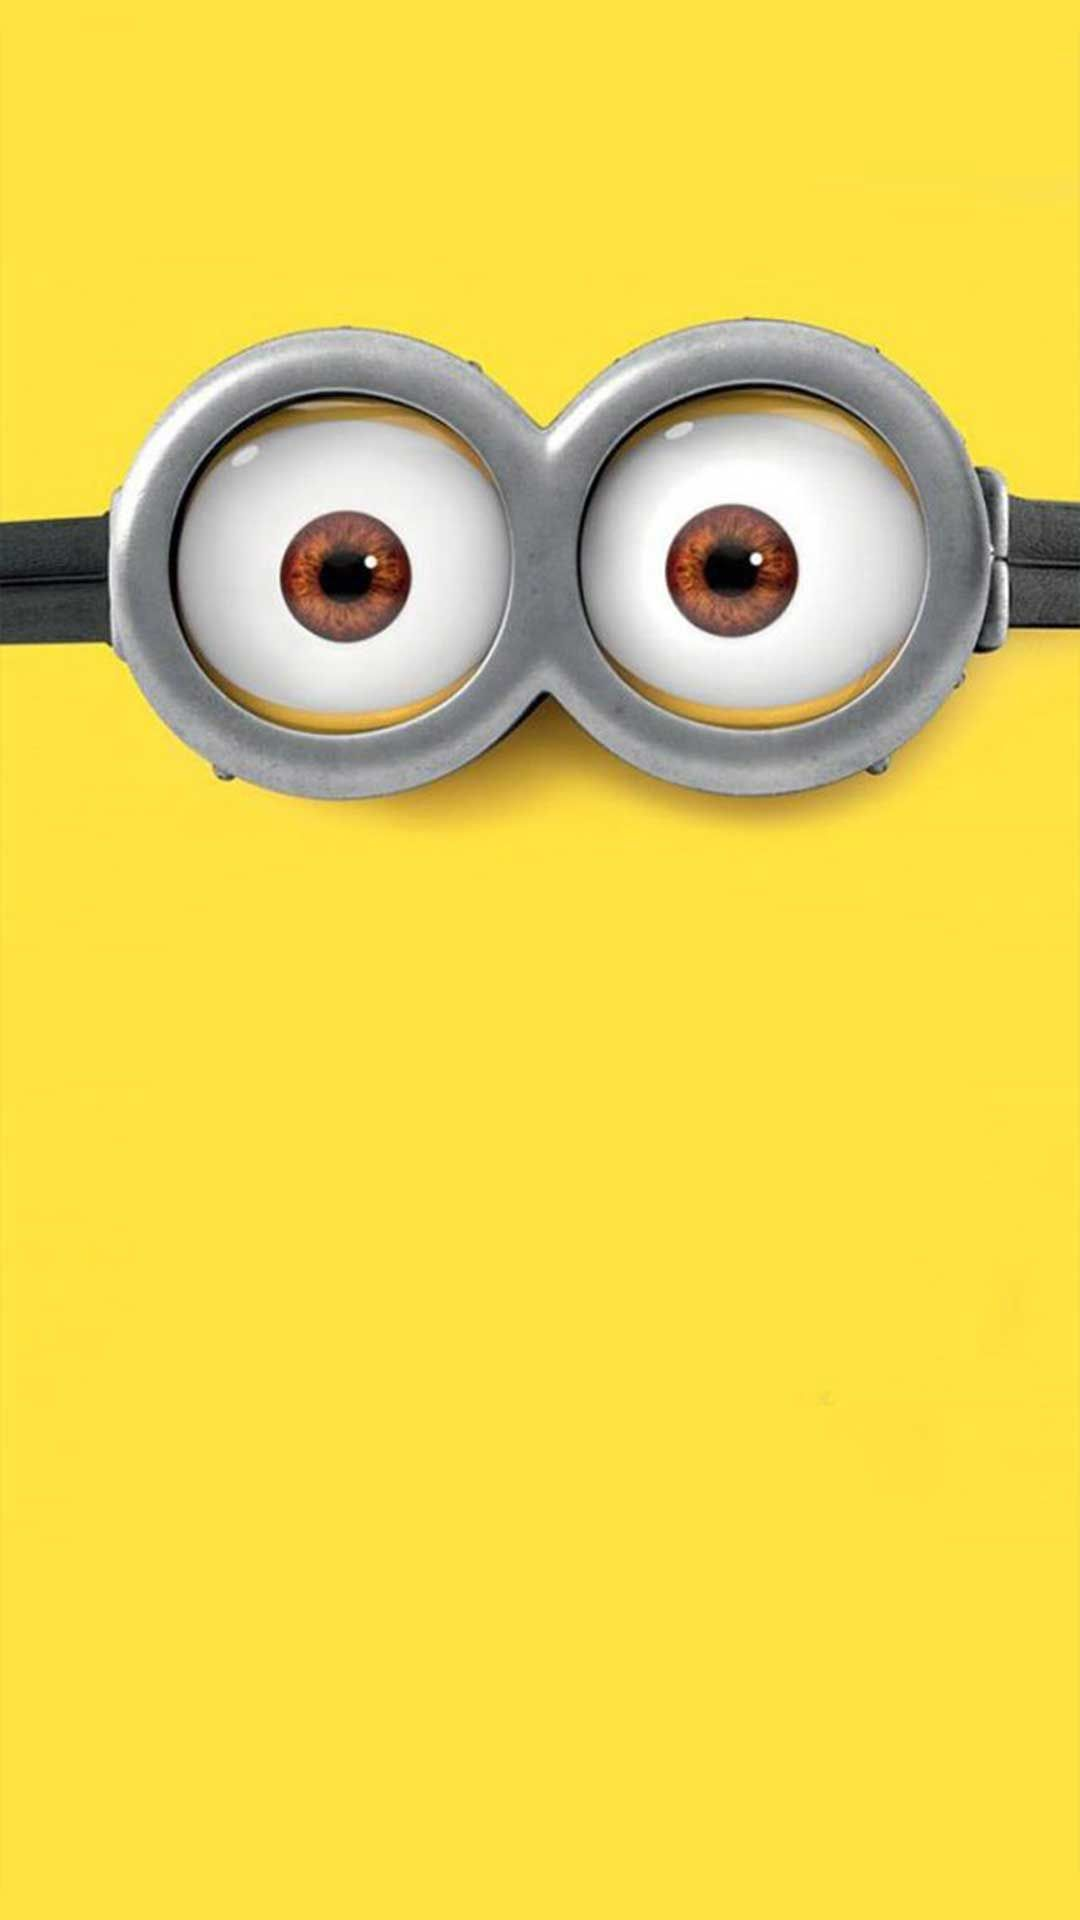 Minions 1 Pinterest Iphone Wallpaper Wallpaper And Funny